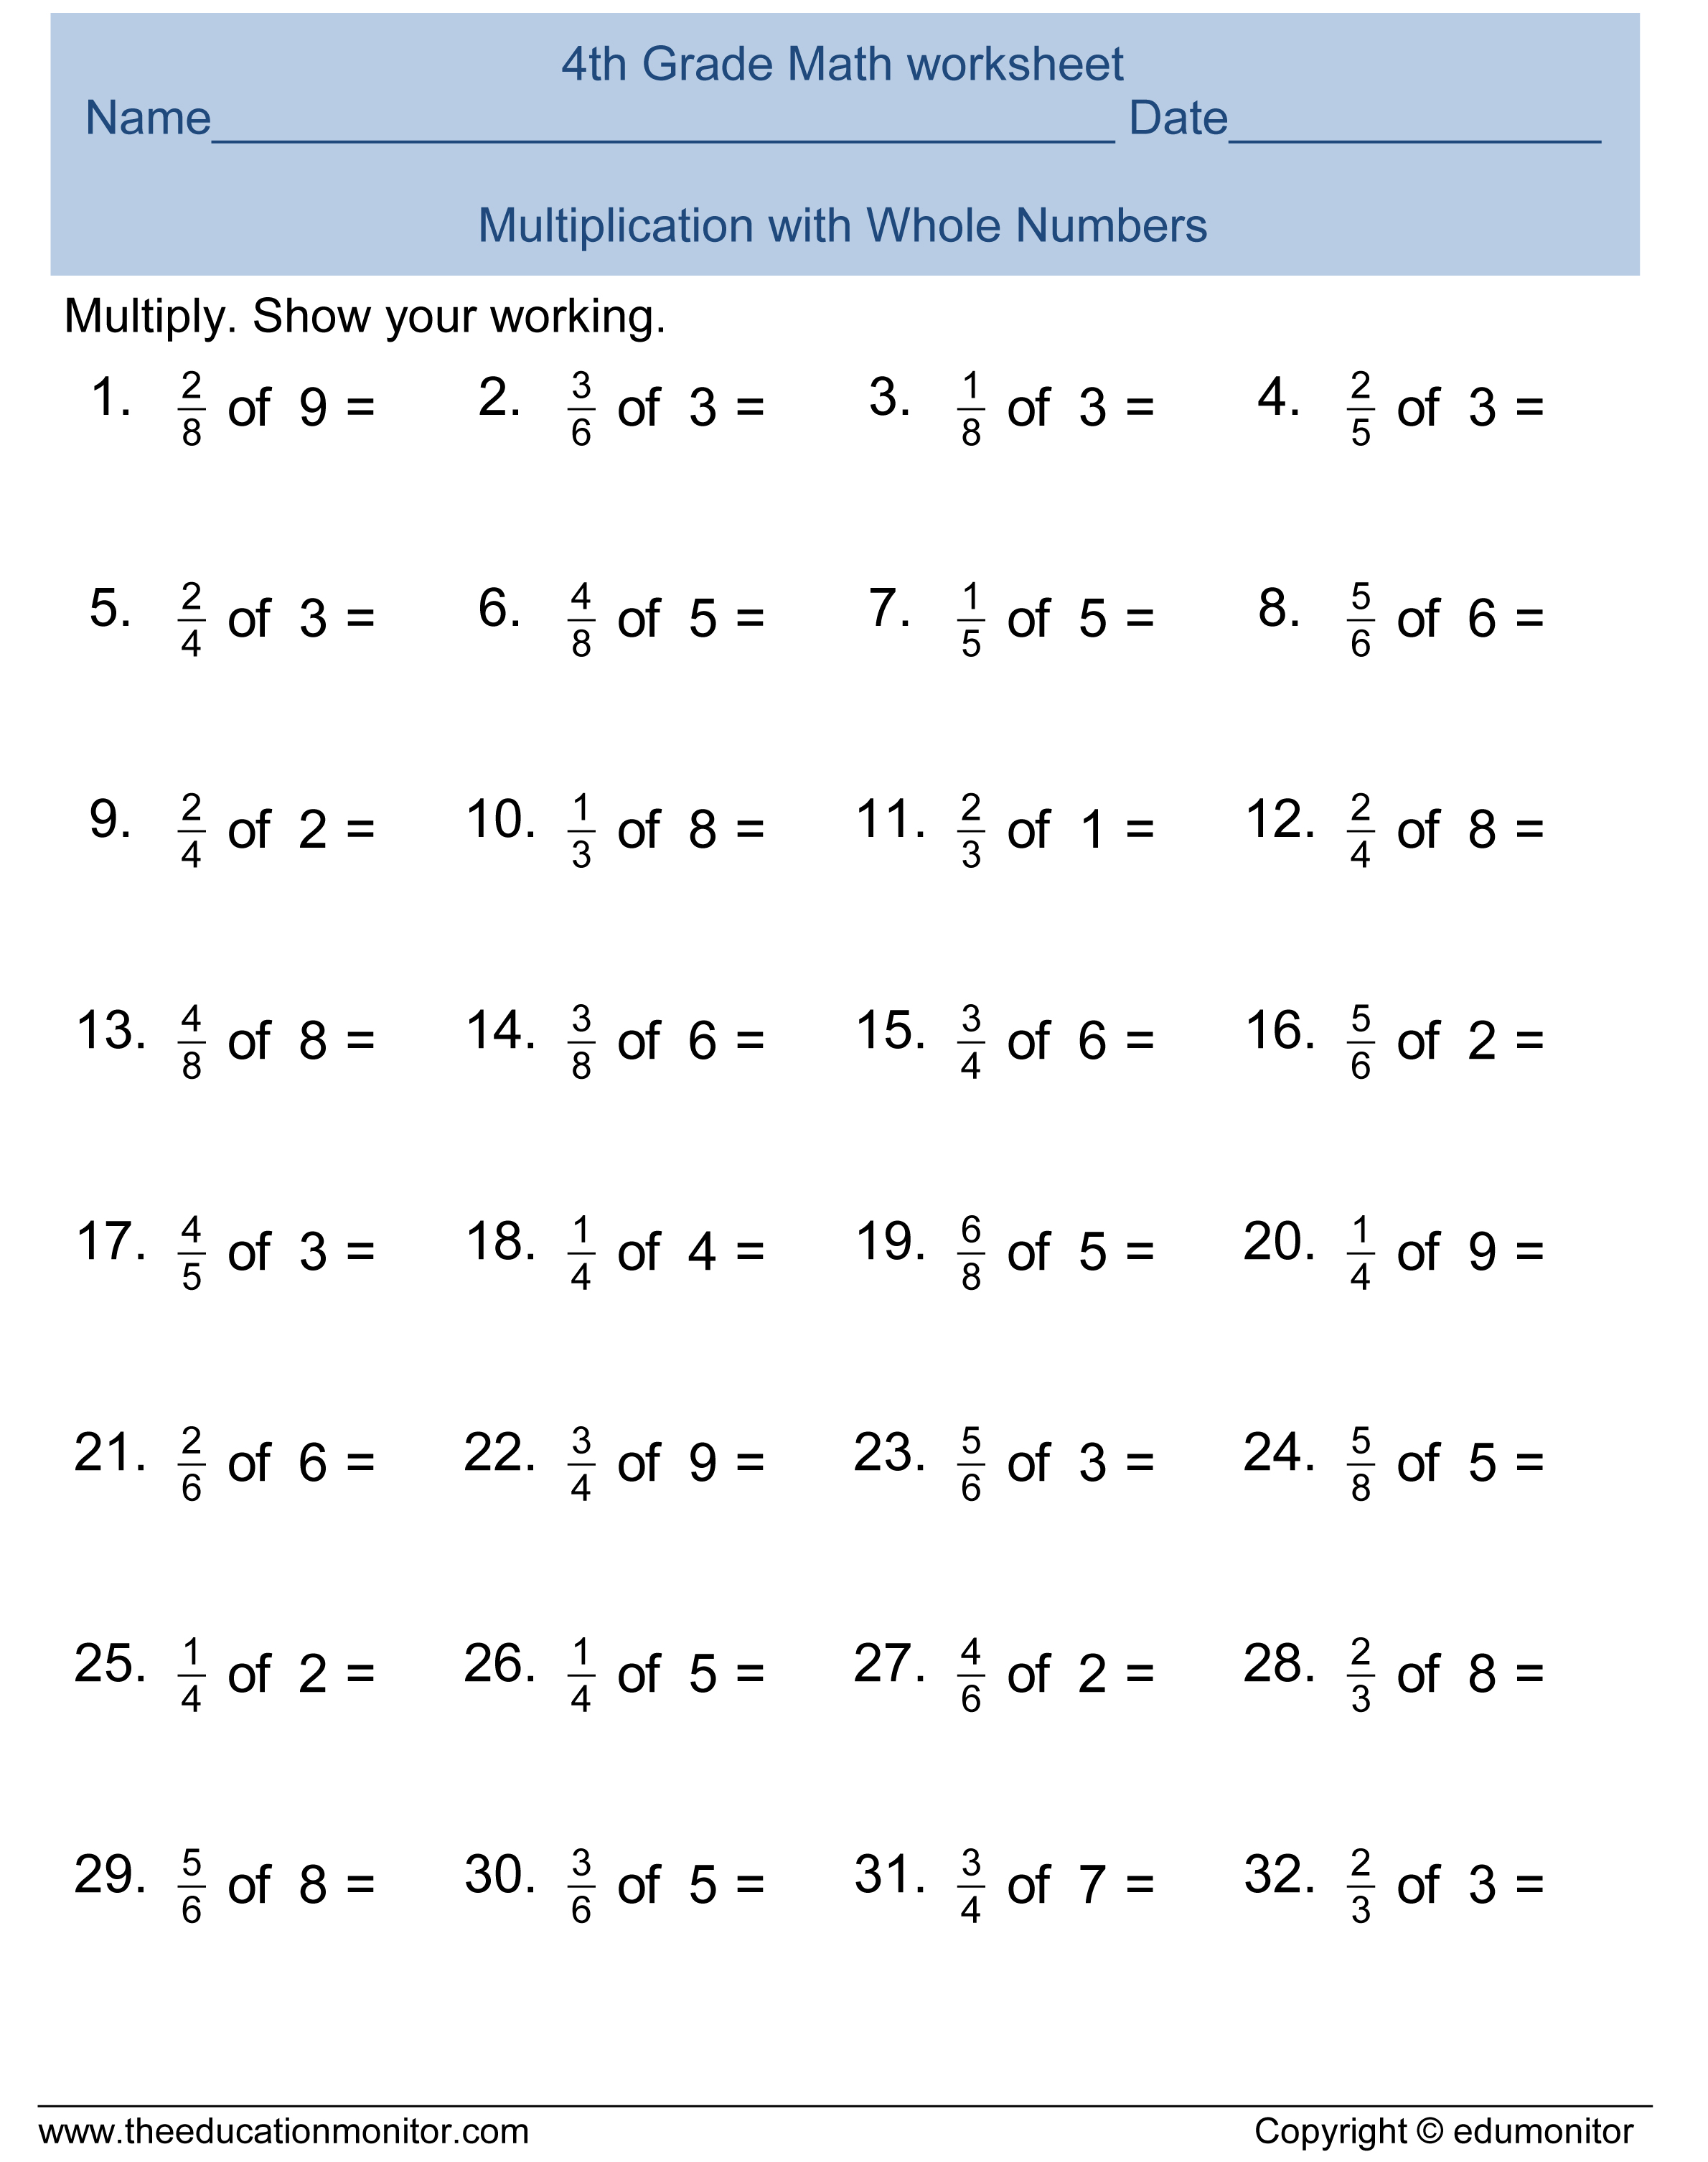 Worksheet Fractions For 4th Graders free printable worksheets for 4th grade fractions math and printables